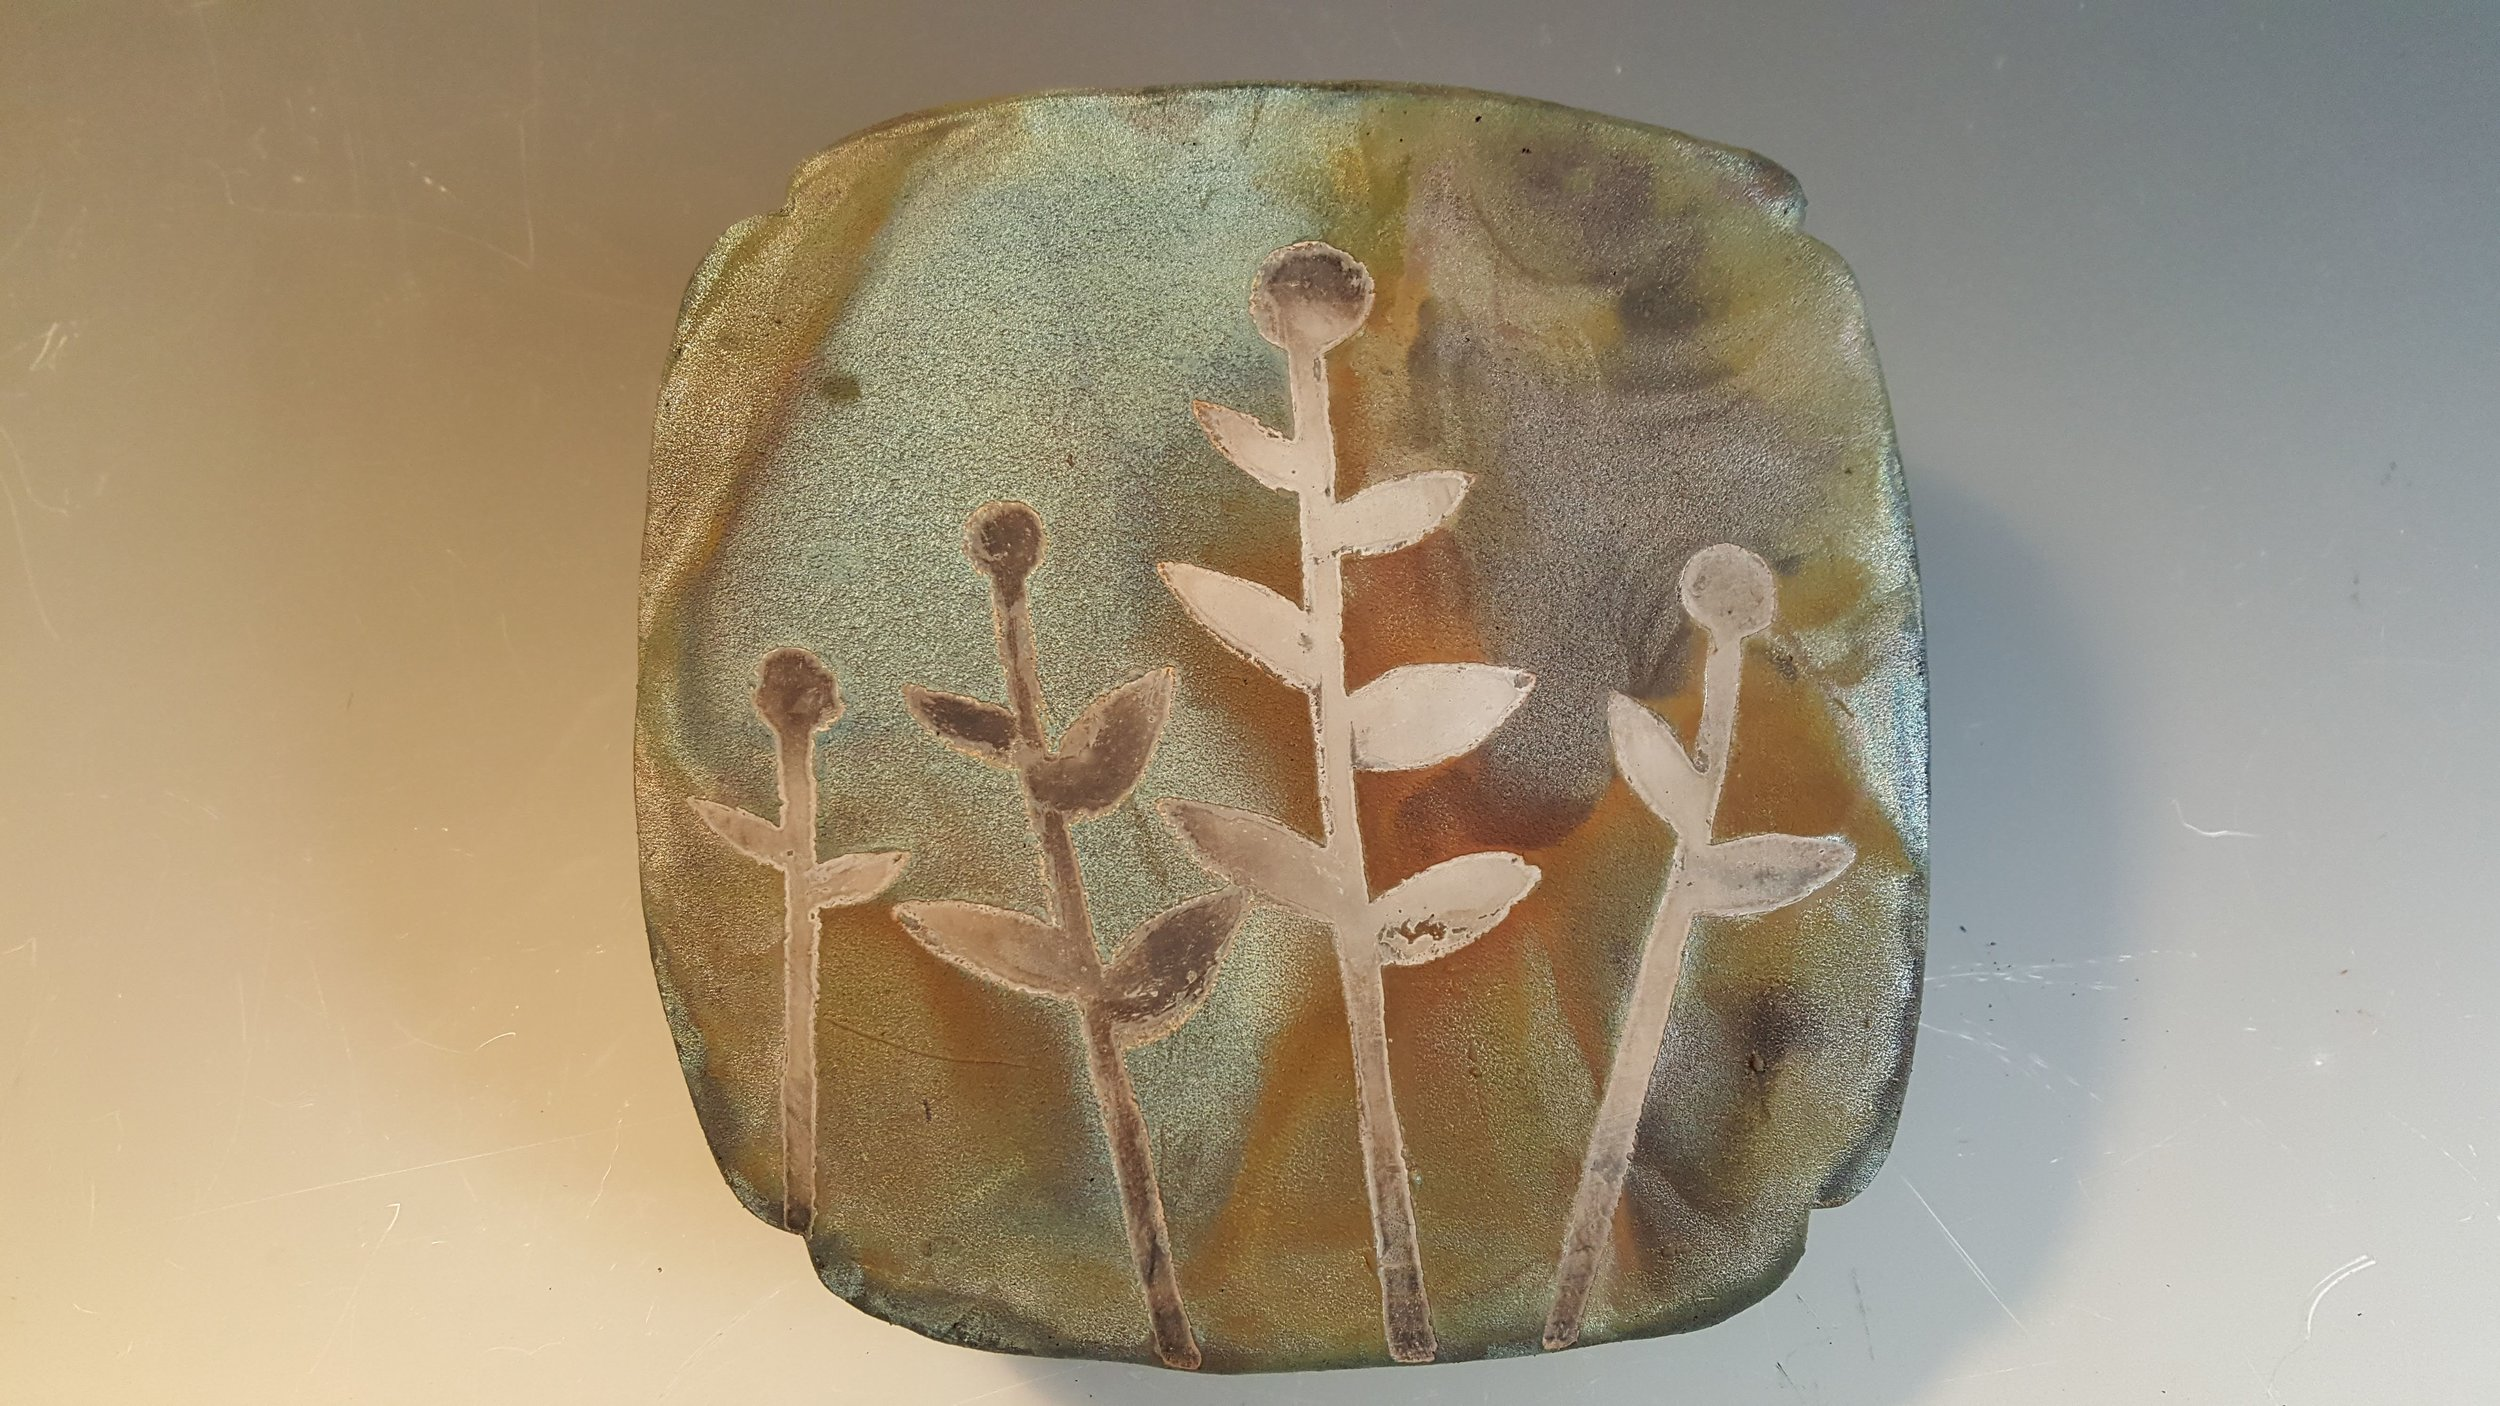 """Untitled"" 2018, raku-fired stoneware with paper resist design"